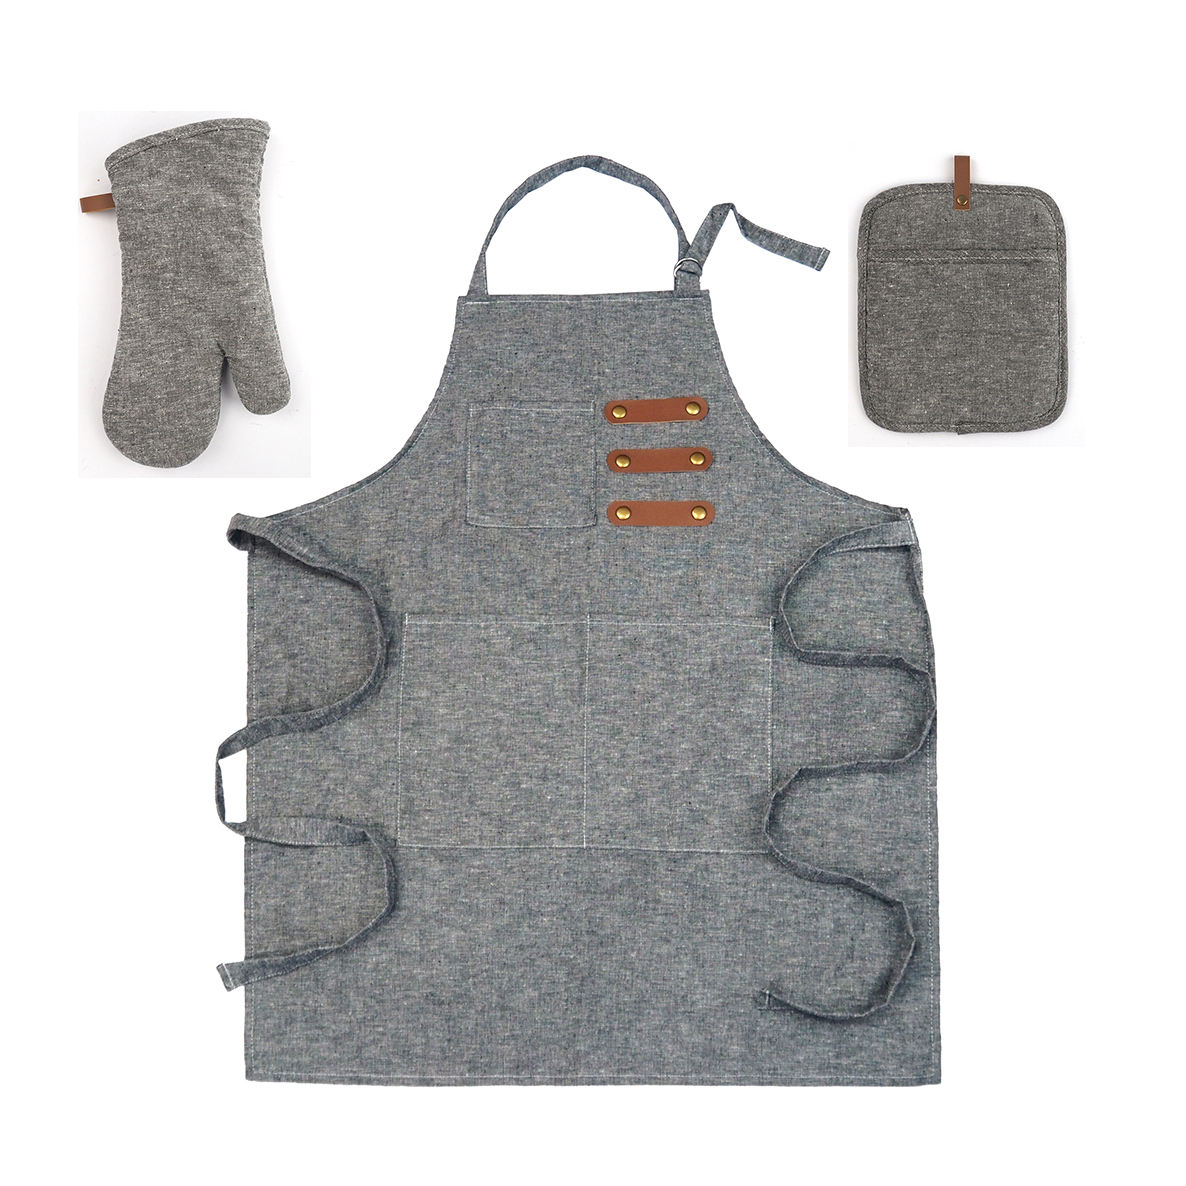 MEITA HOME Kitchen cooking gray cotton apron set Pot Holder Oven Mitt NEW